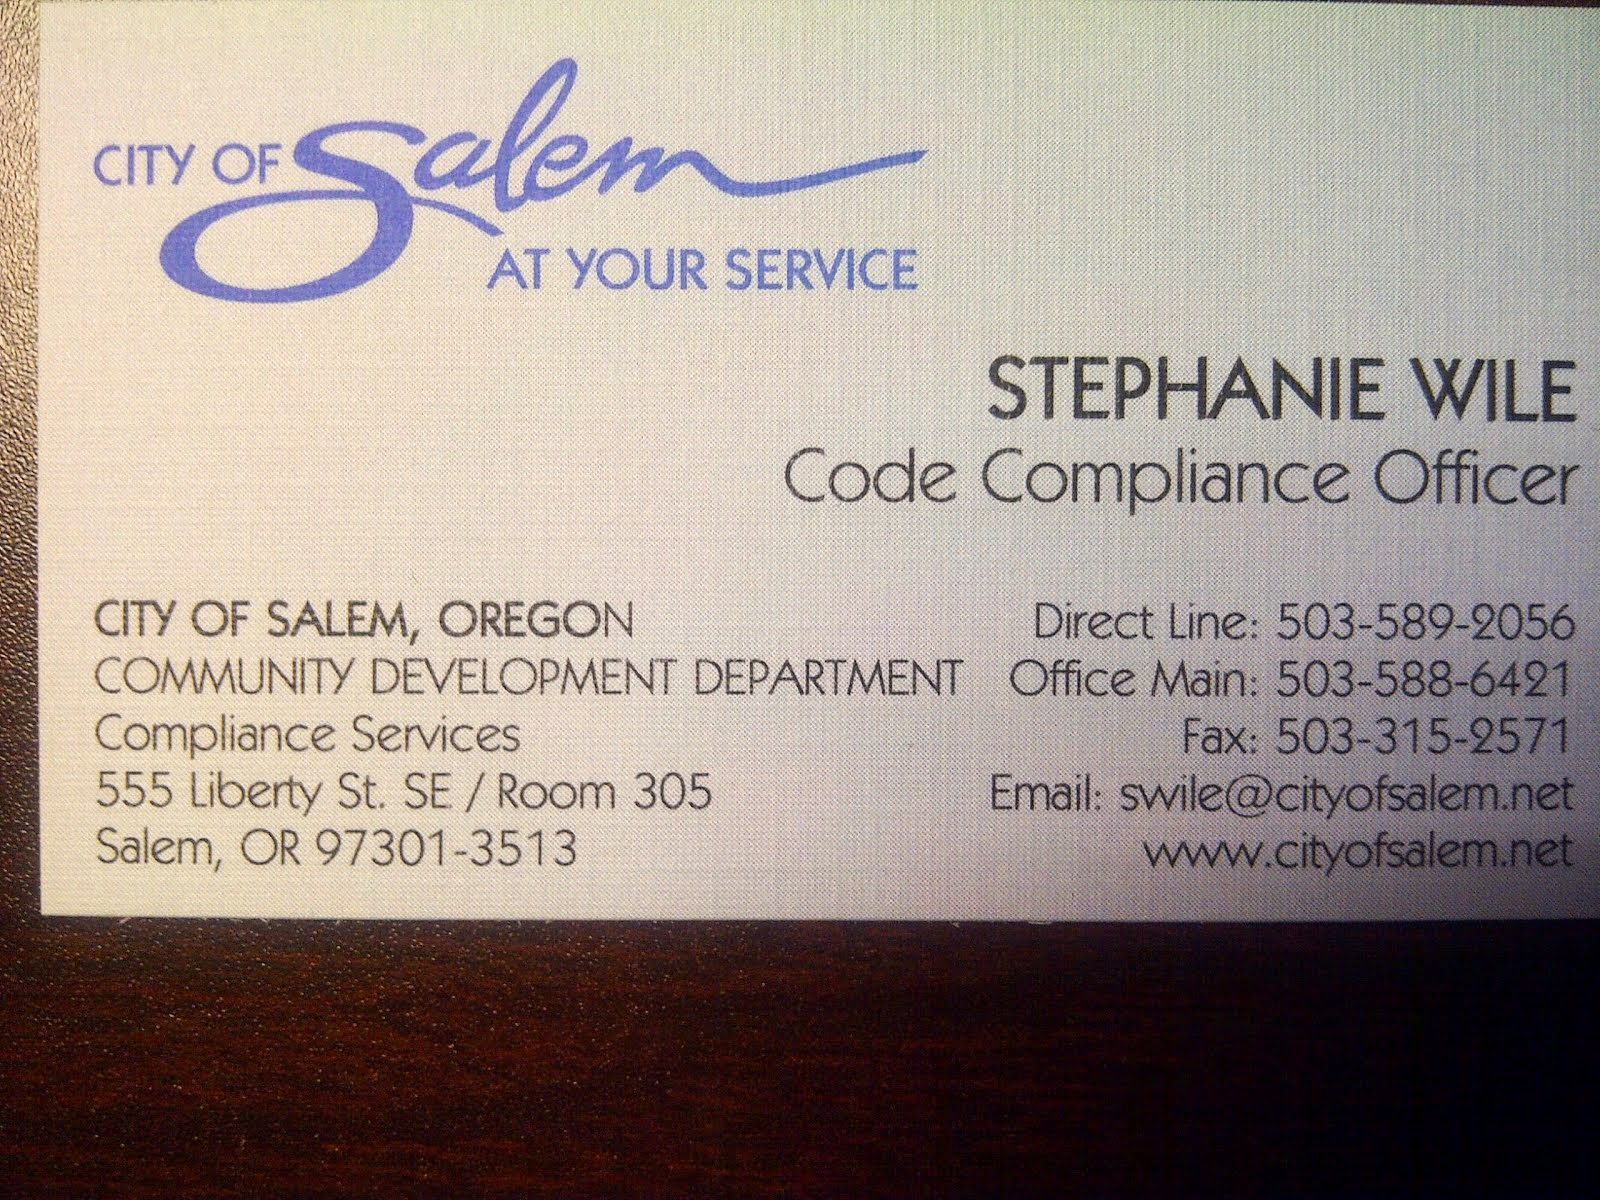 sgna news contact info for code pliance officer